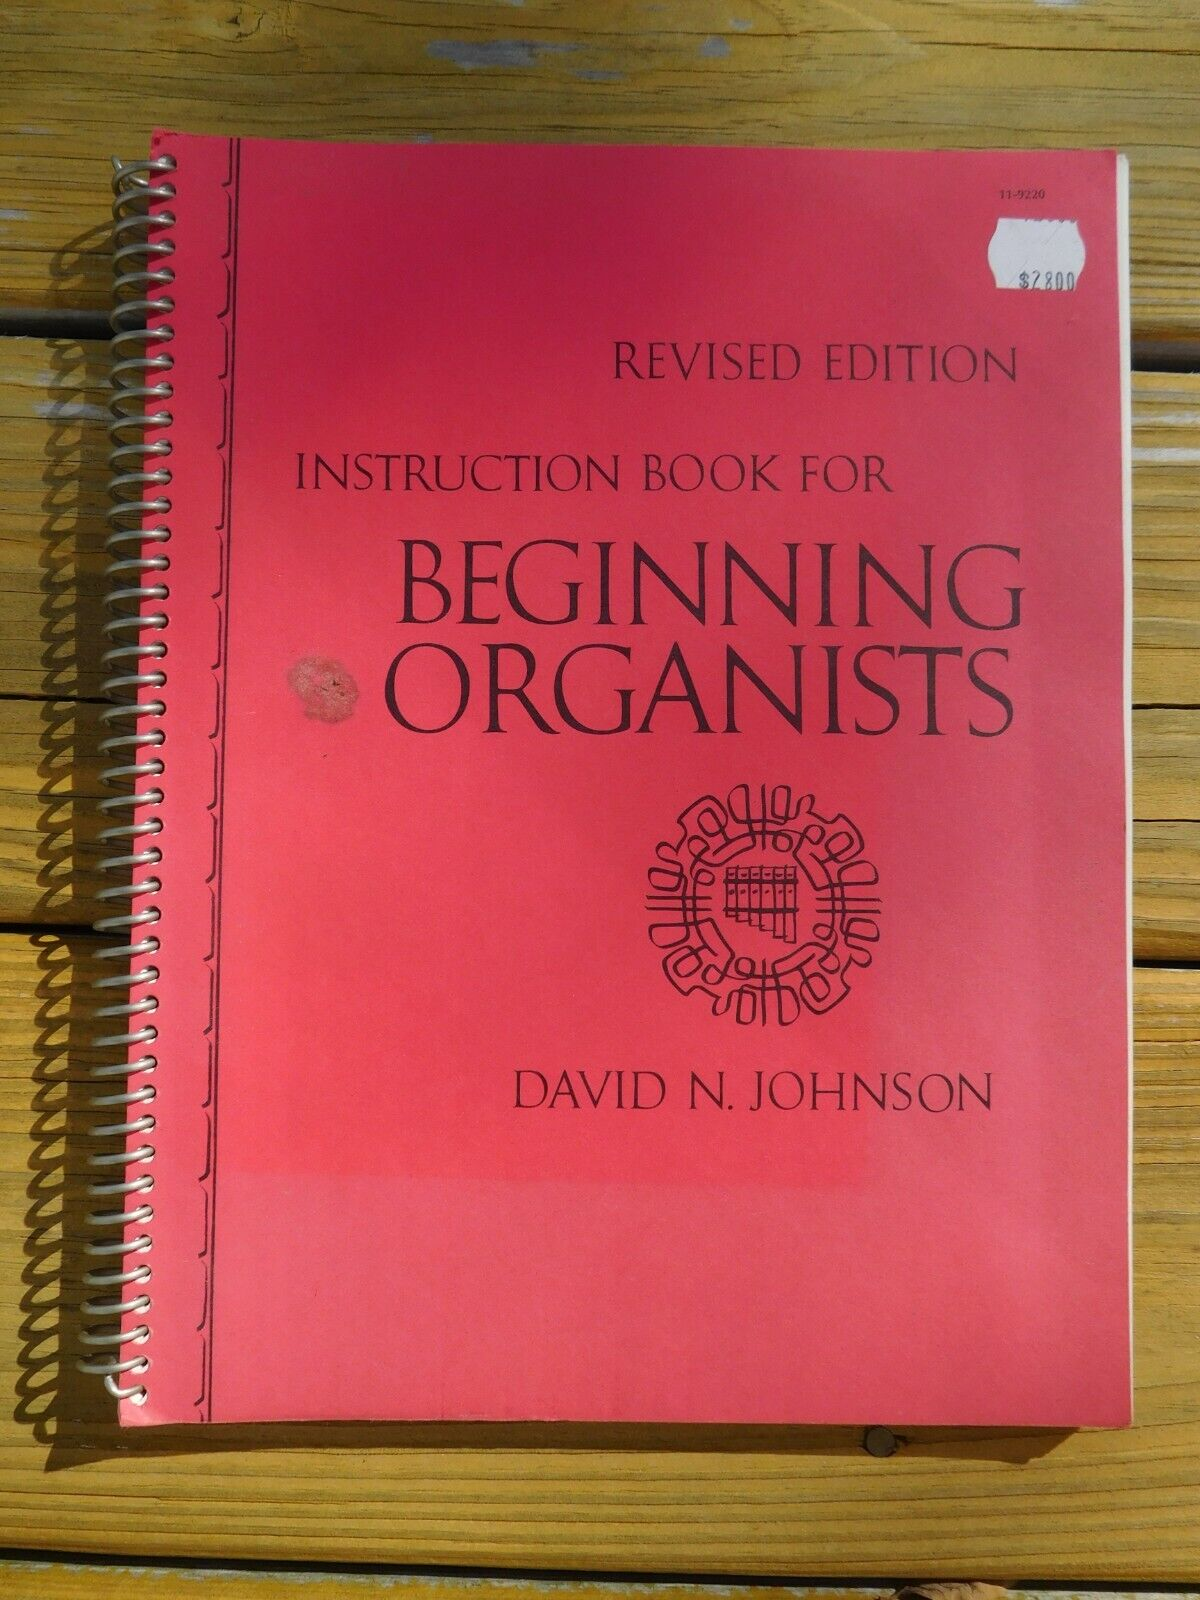 Instruction Book For Beginning Organists 1973 By David N. Johnson  - $13.95